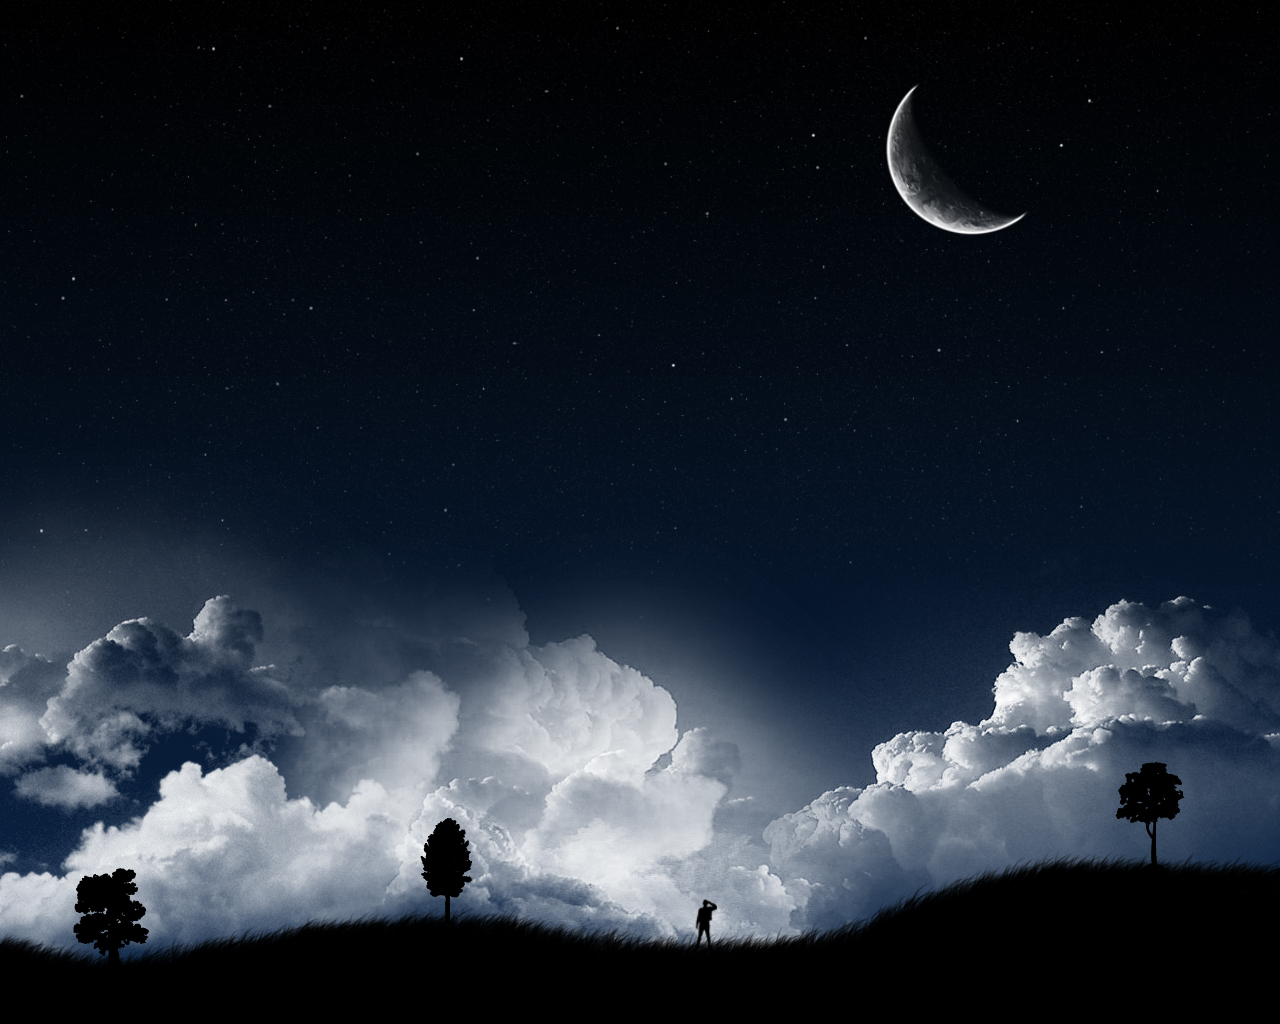 Night Moon over Hilly Landscape 353.03 Kb